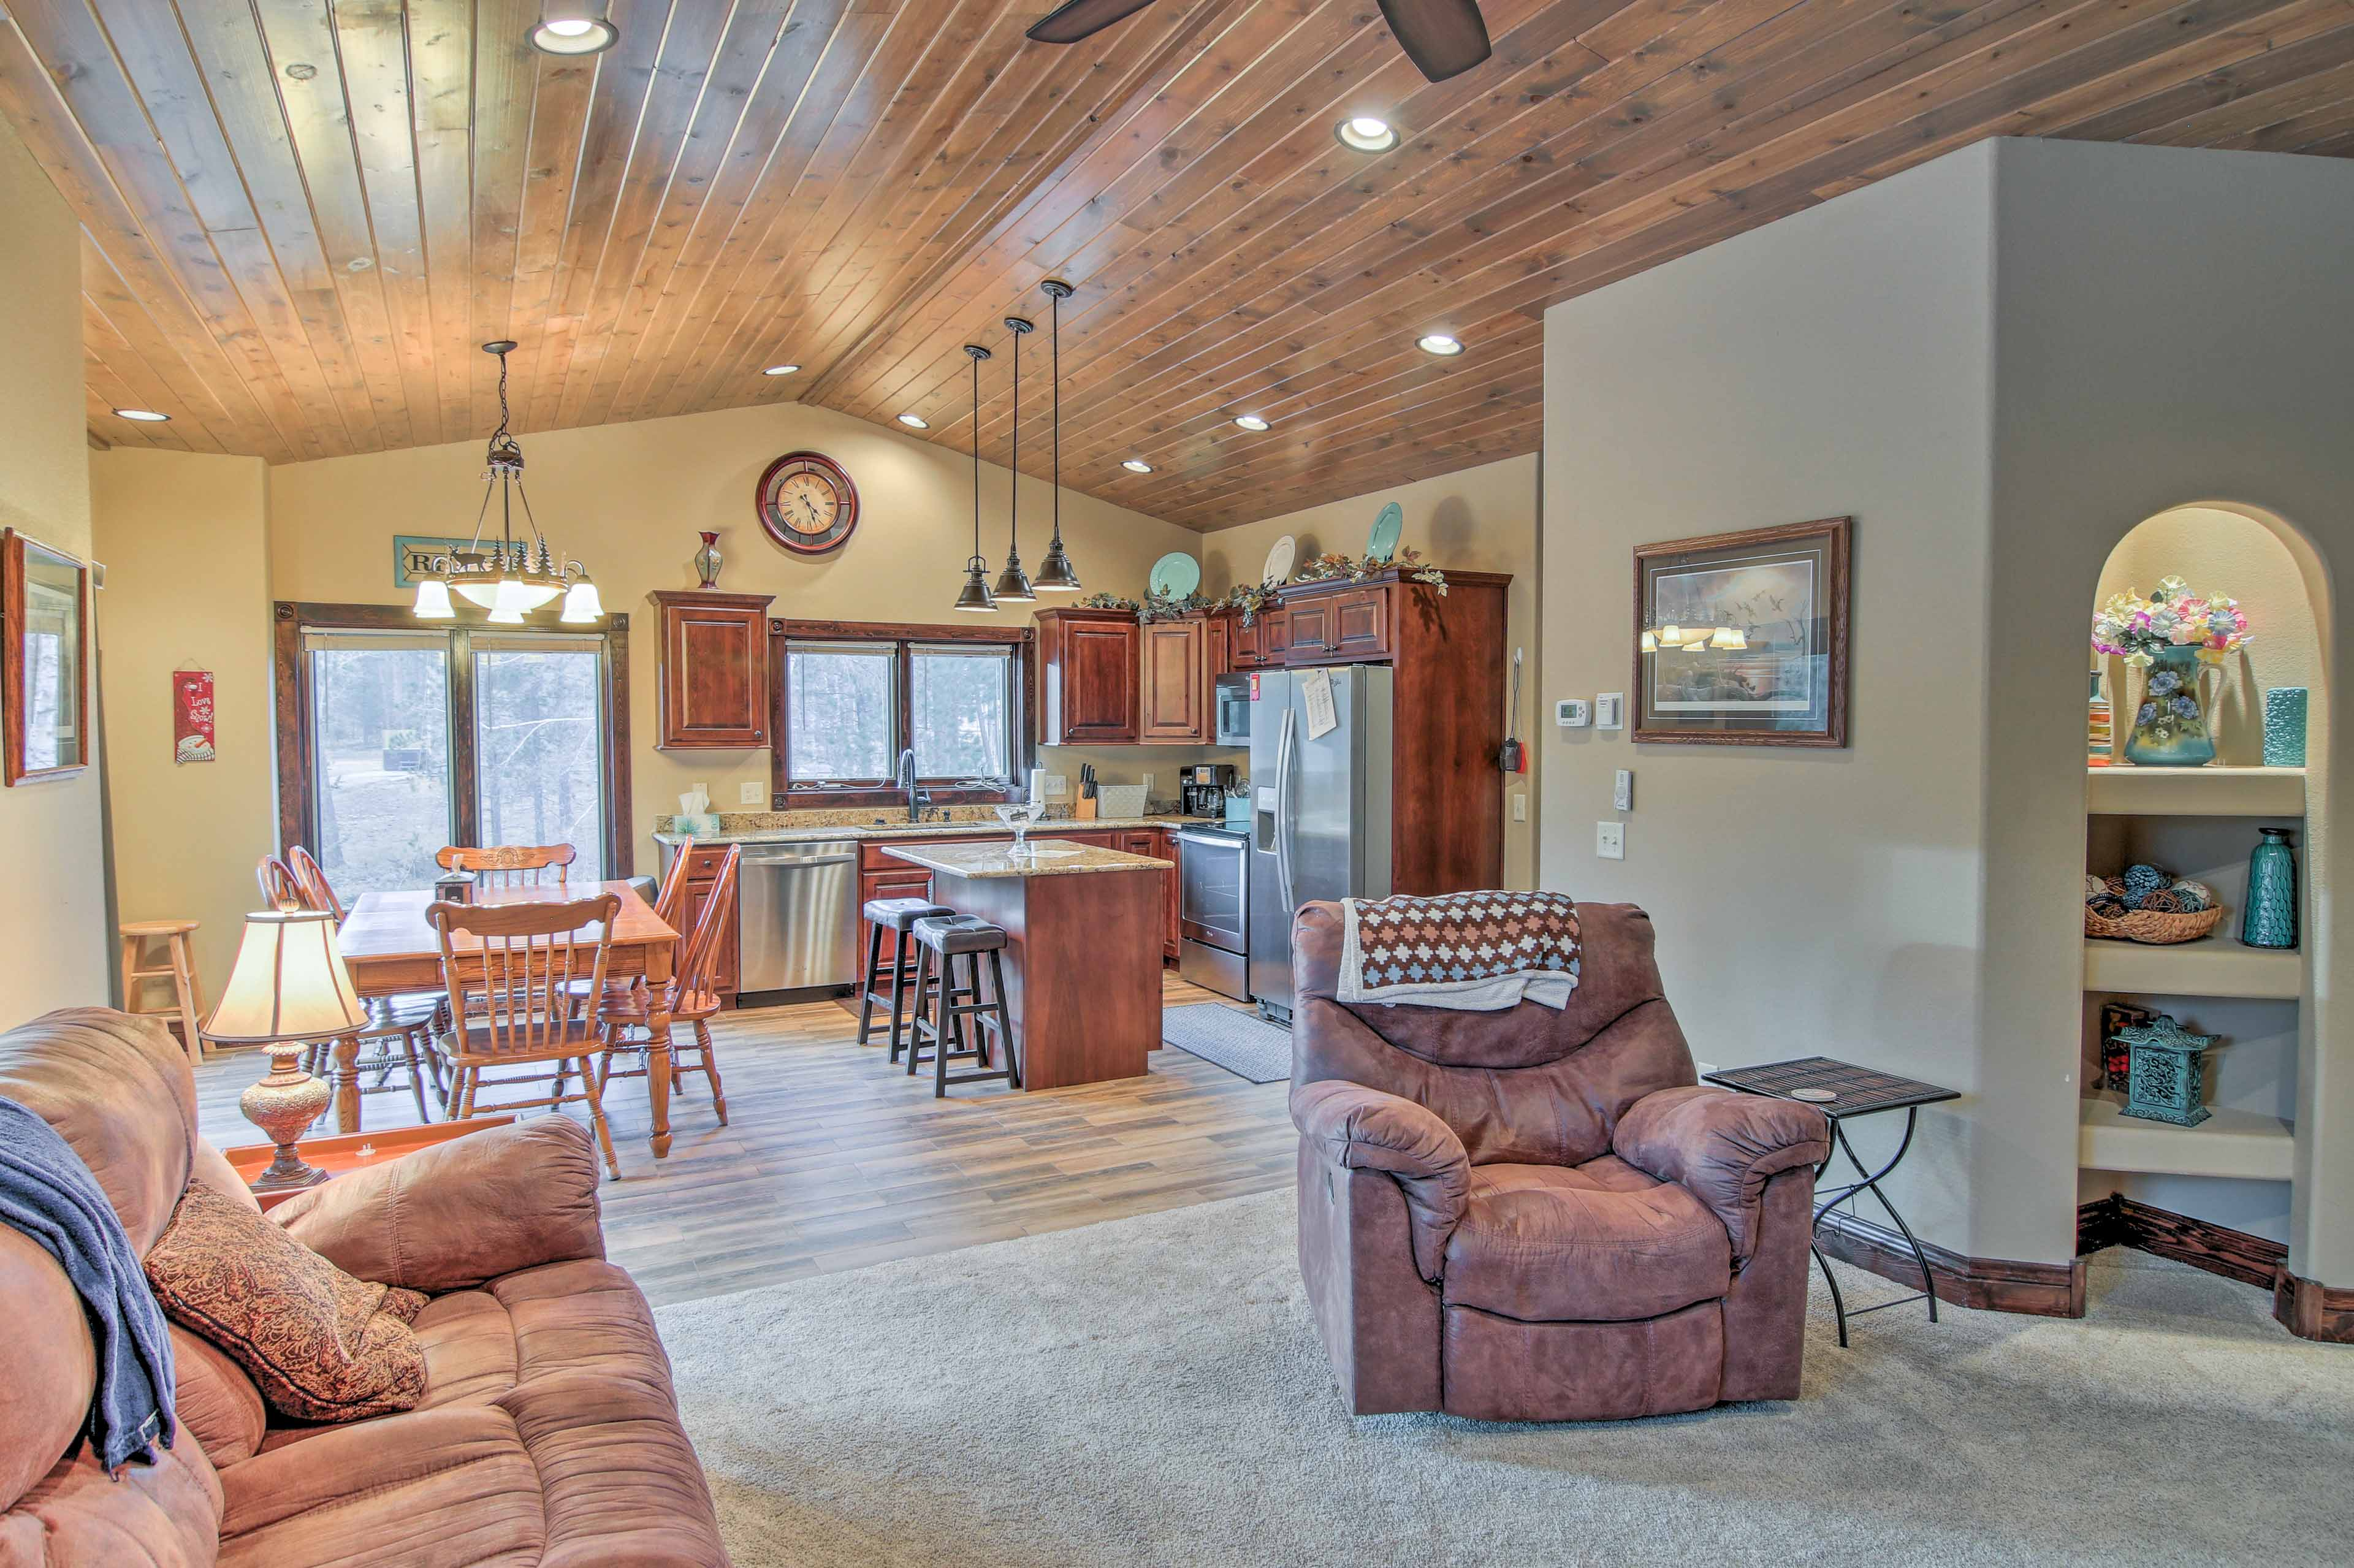 You'll have plenty of room for the whole family inside 3,500 square feet of updated interior.